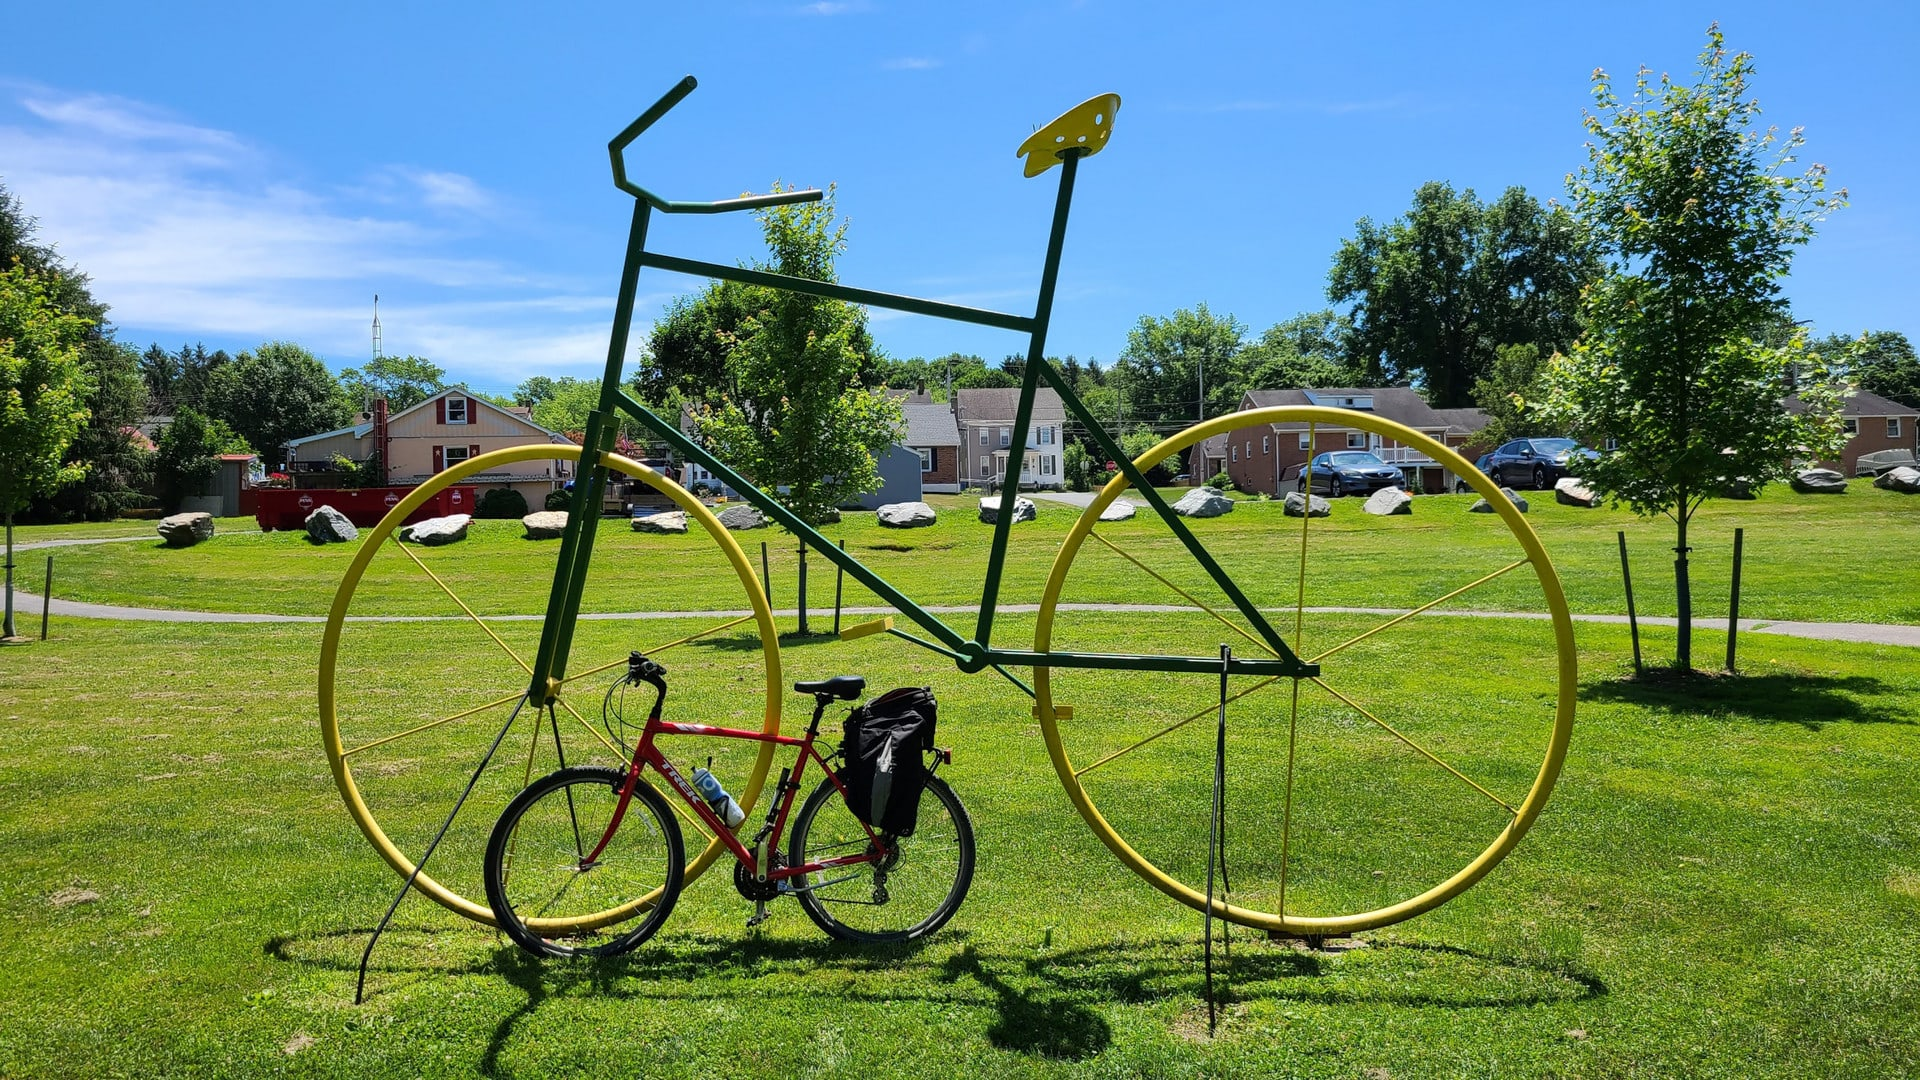 A bike statue made of metal pipe stands approximately 15 feet tall. My red Trek bike is parked in front of the statue for scale.